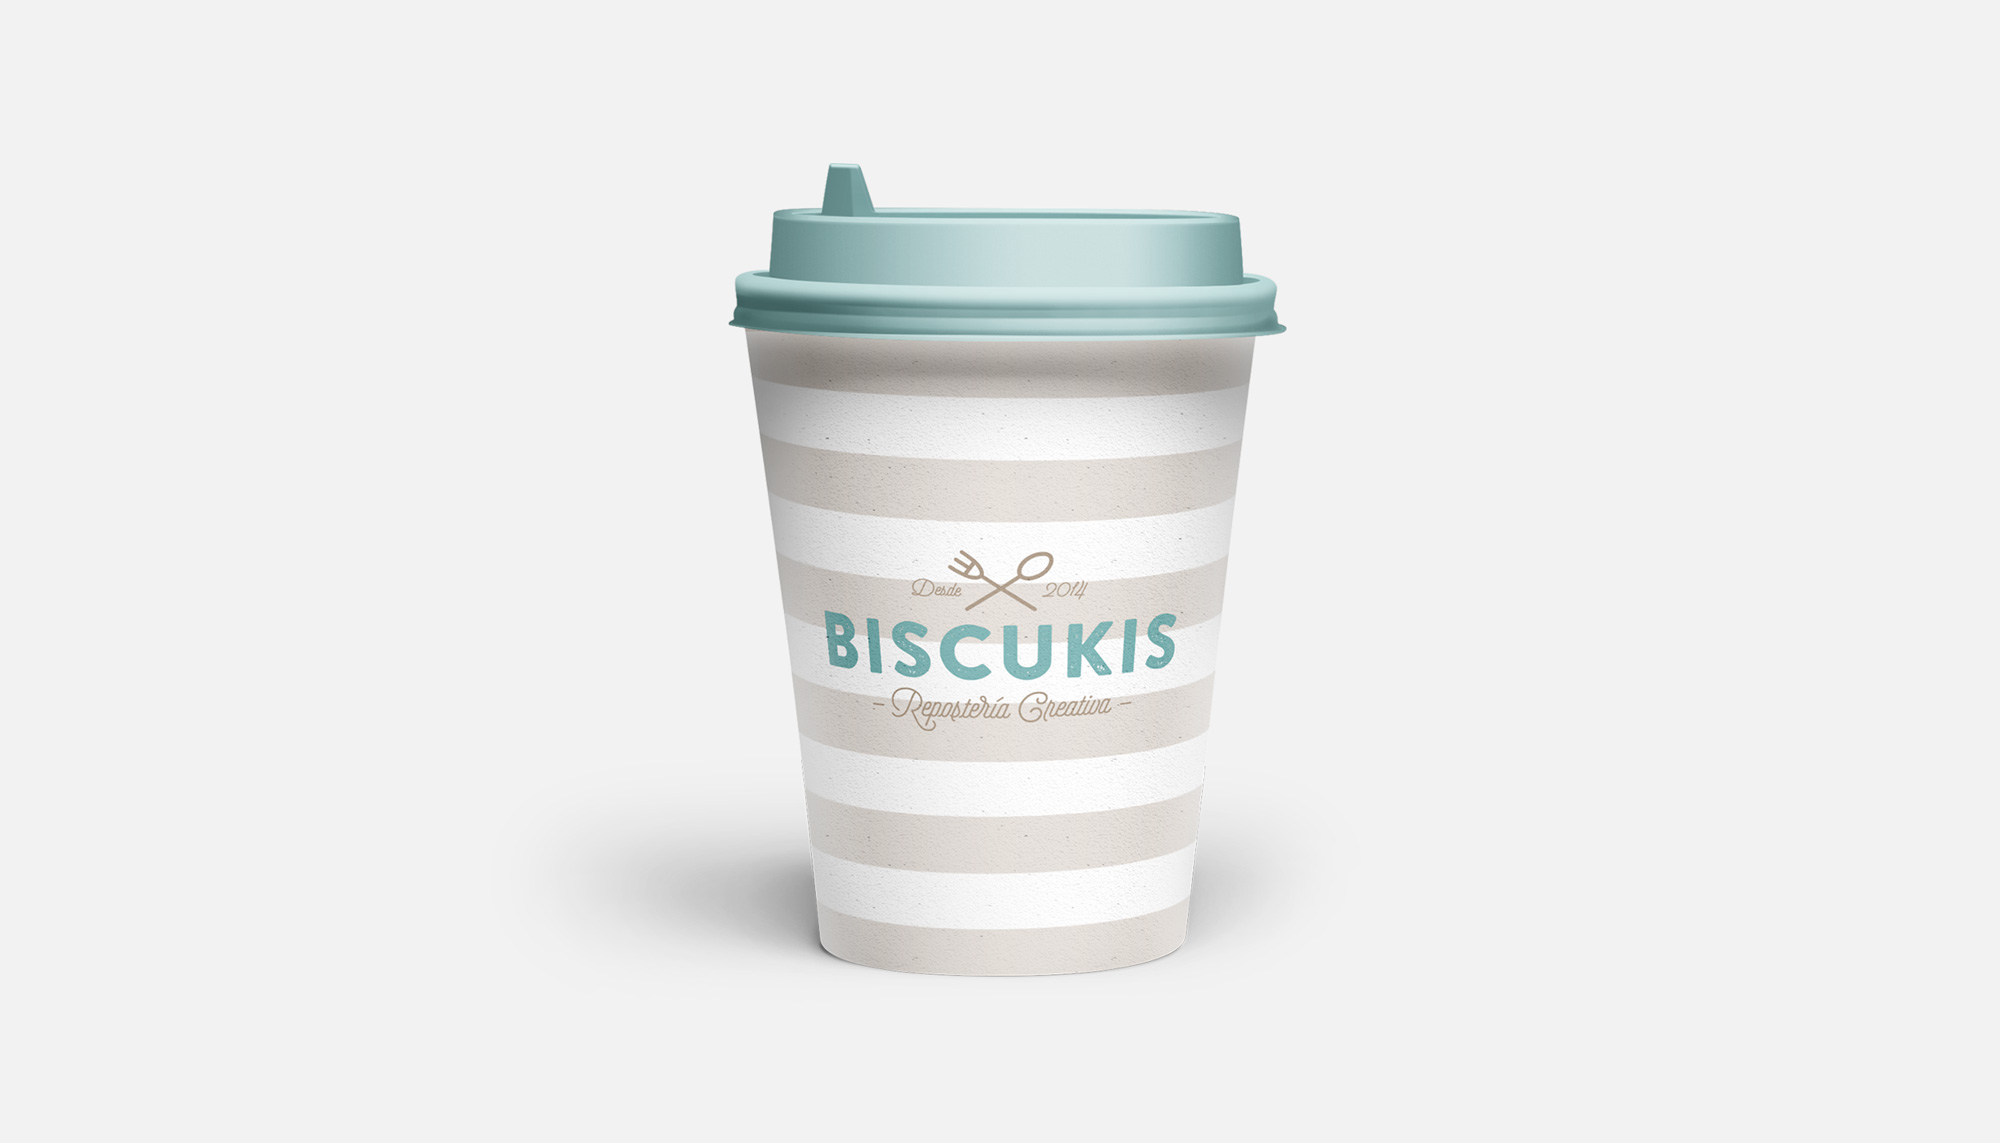 biscukis-06